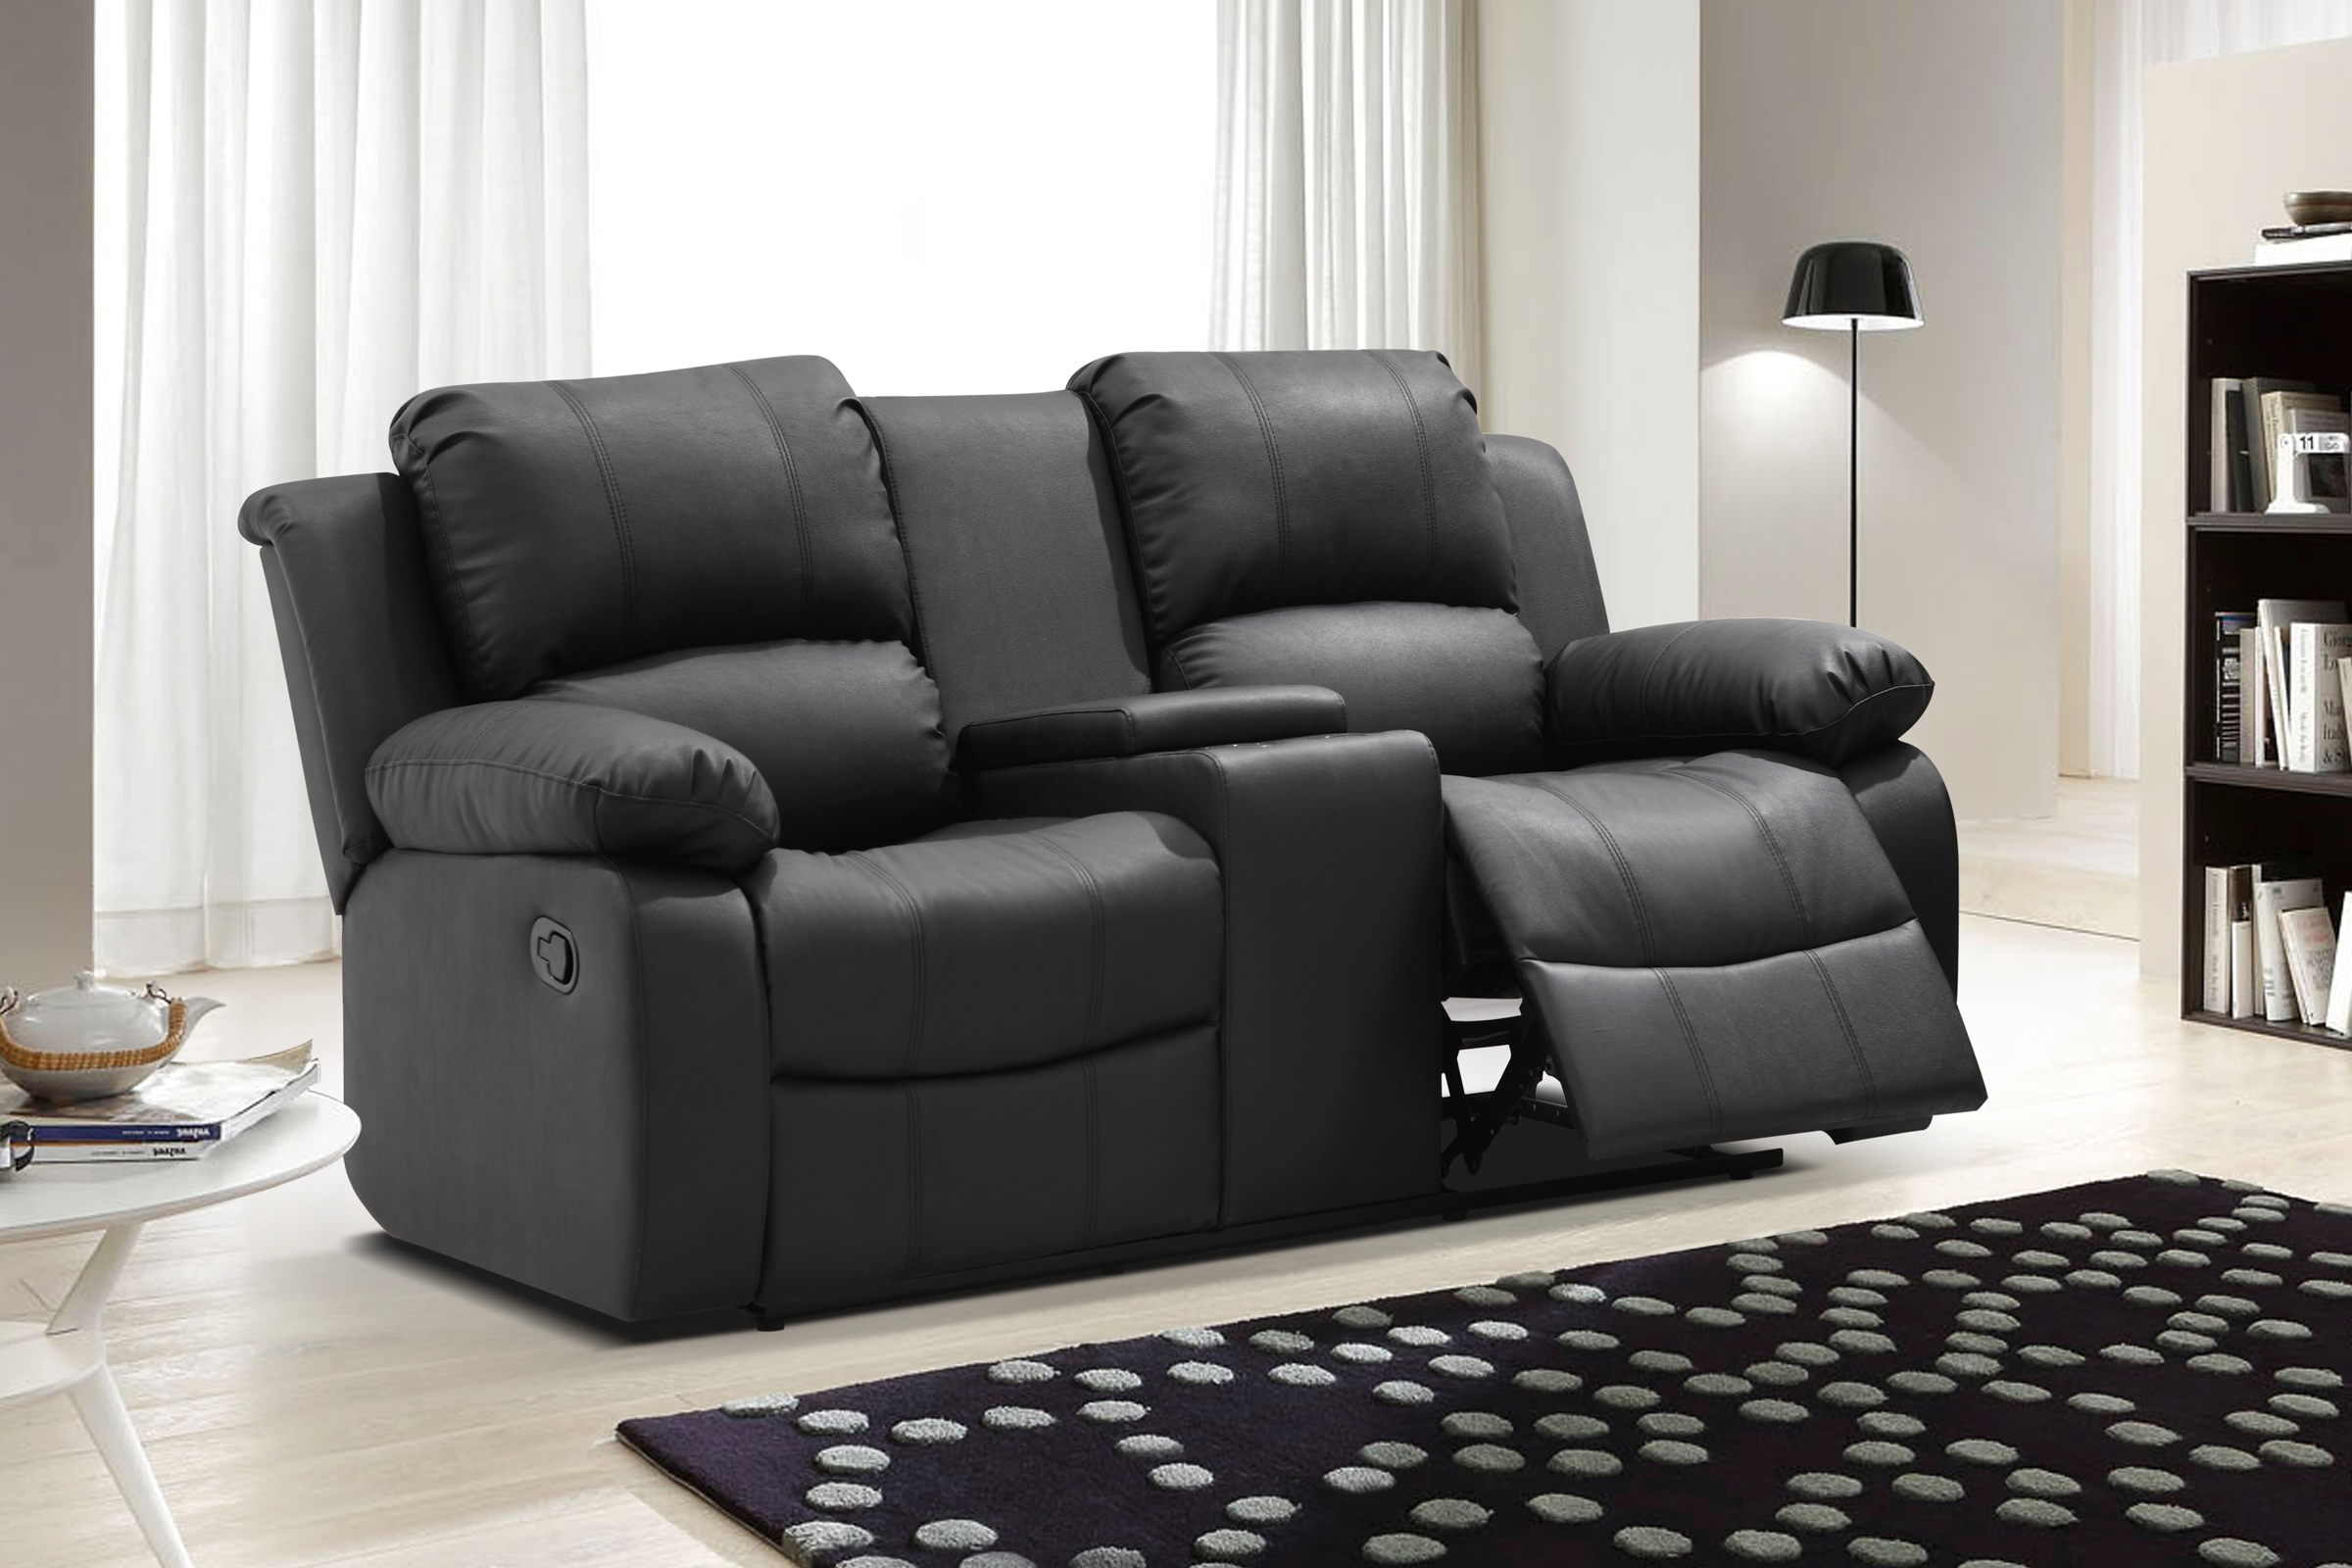 UFE Zoey Bonded Leather Reclining Loveseat with Center Console Black  sc 1 st  Walmart & UFE Zoey Bonded Leather Reclining Loveseat with Center Console ... islam-shia.org